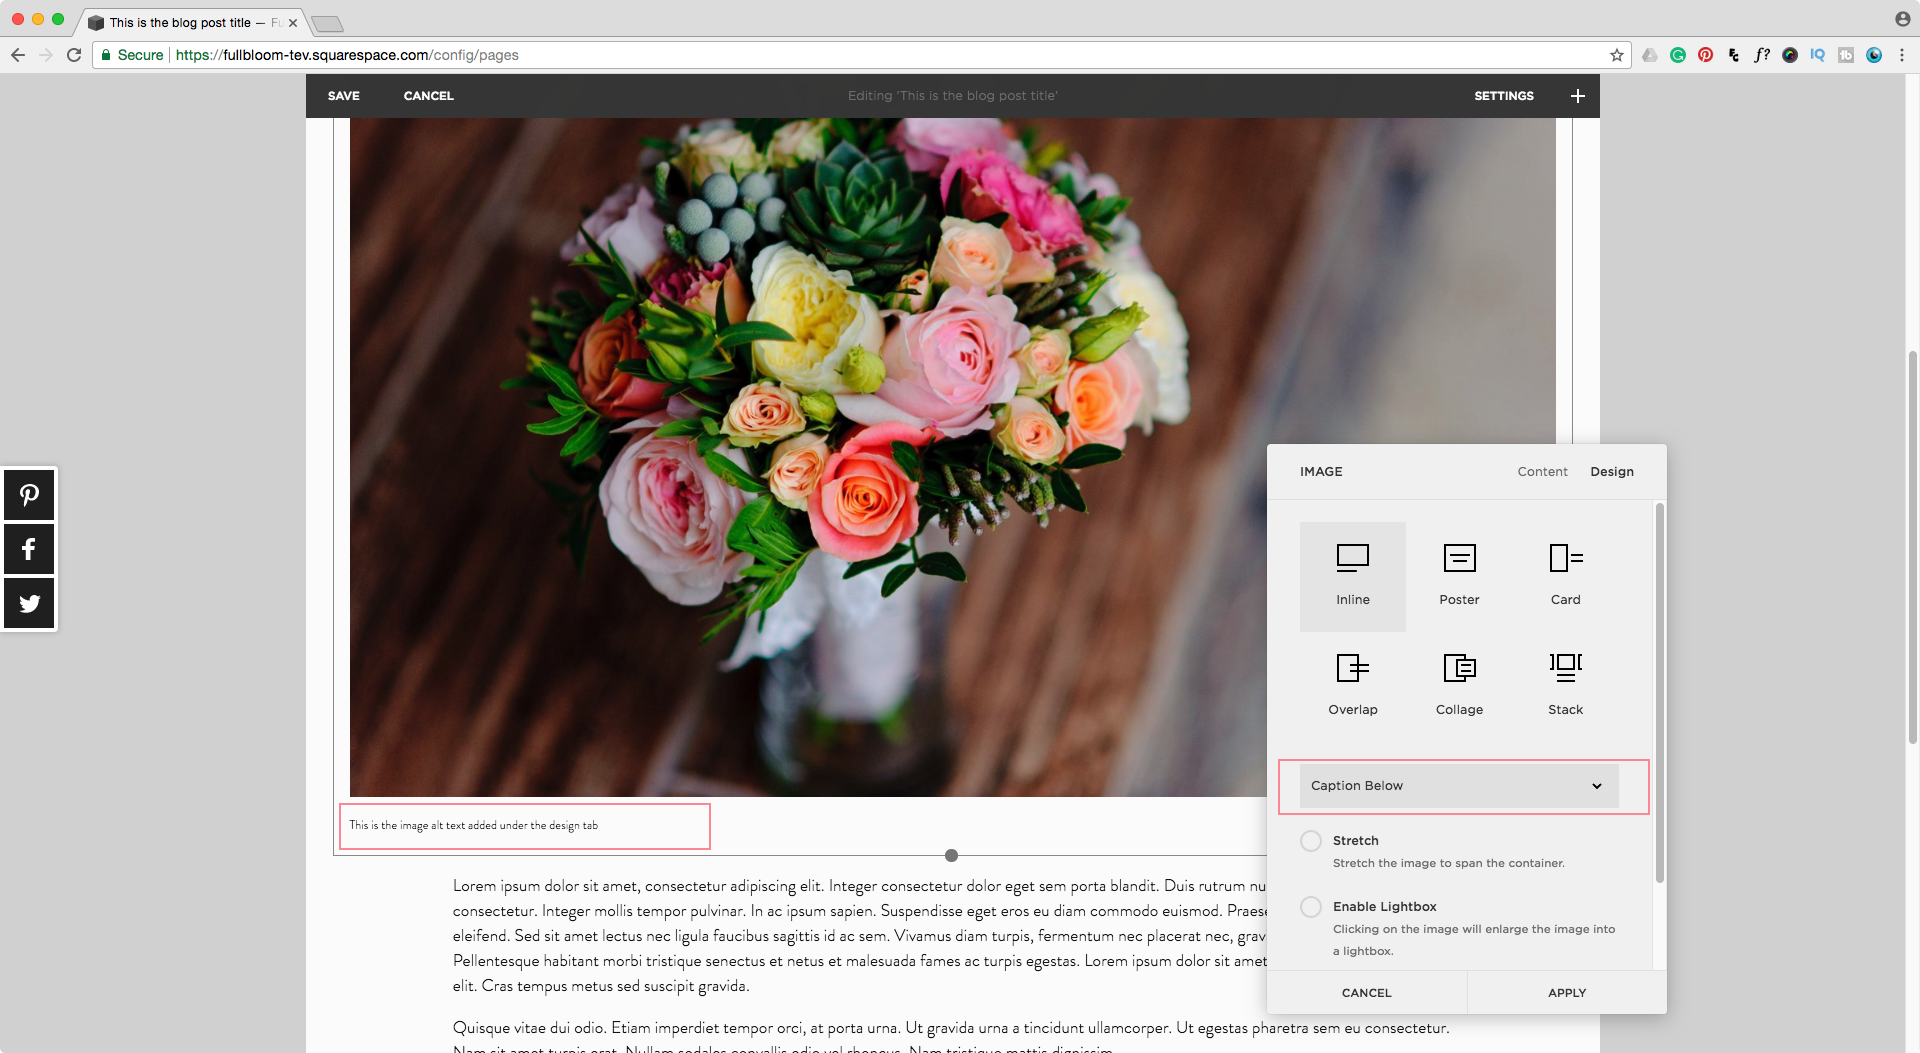 Adding alt text to an image block in Squarespace for SEO and Rich Pins purposes